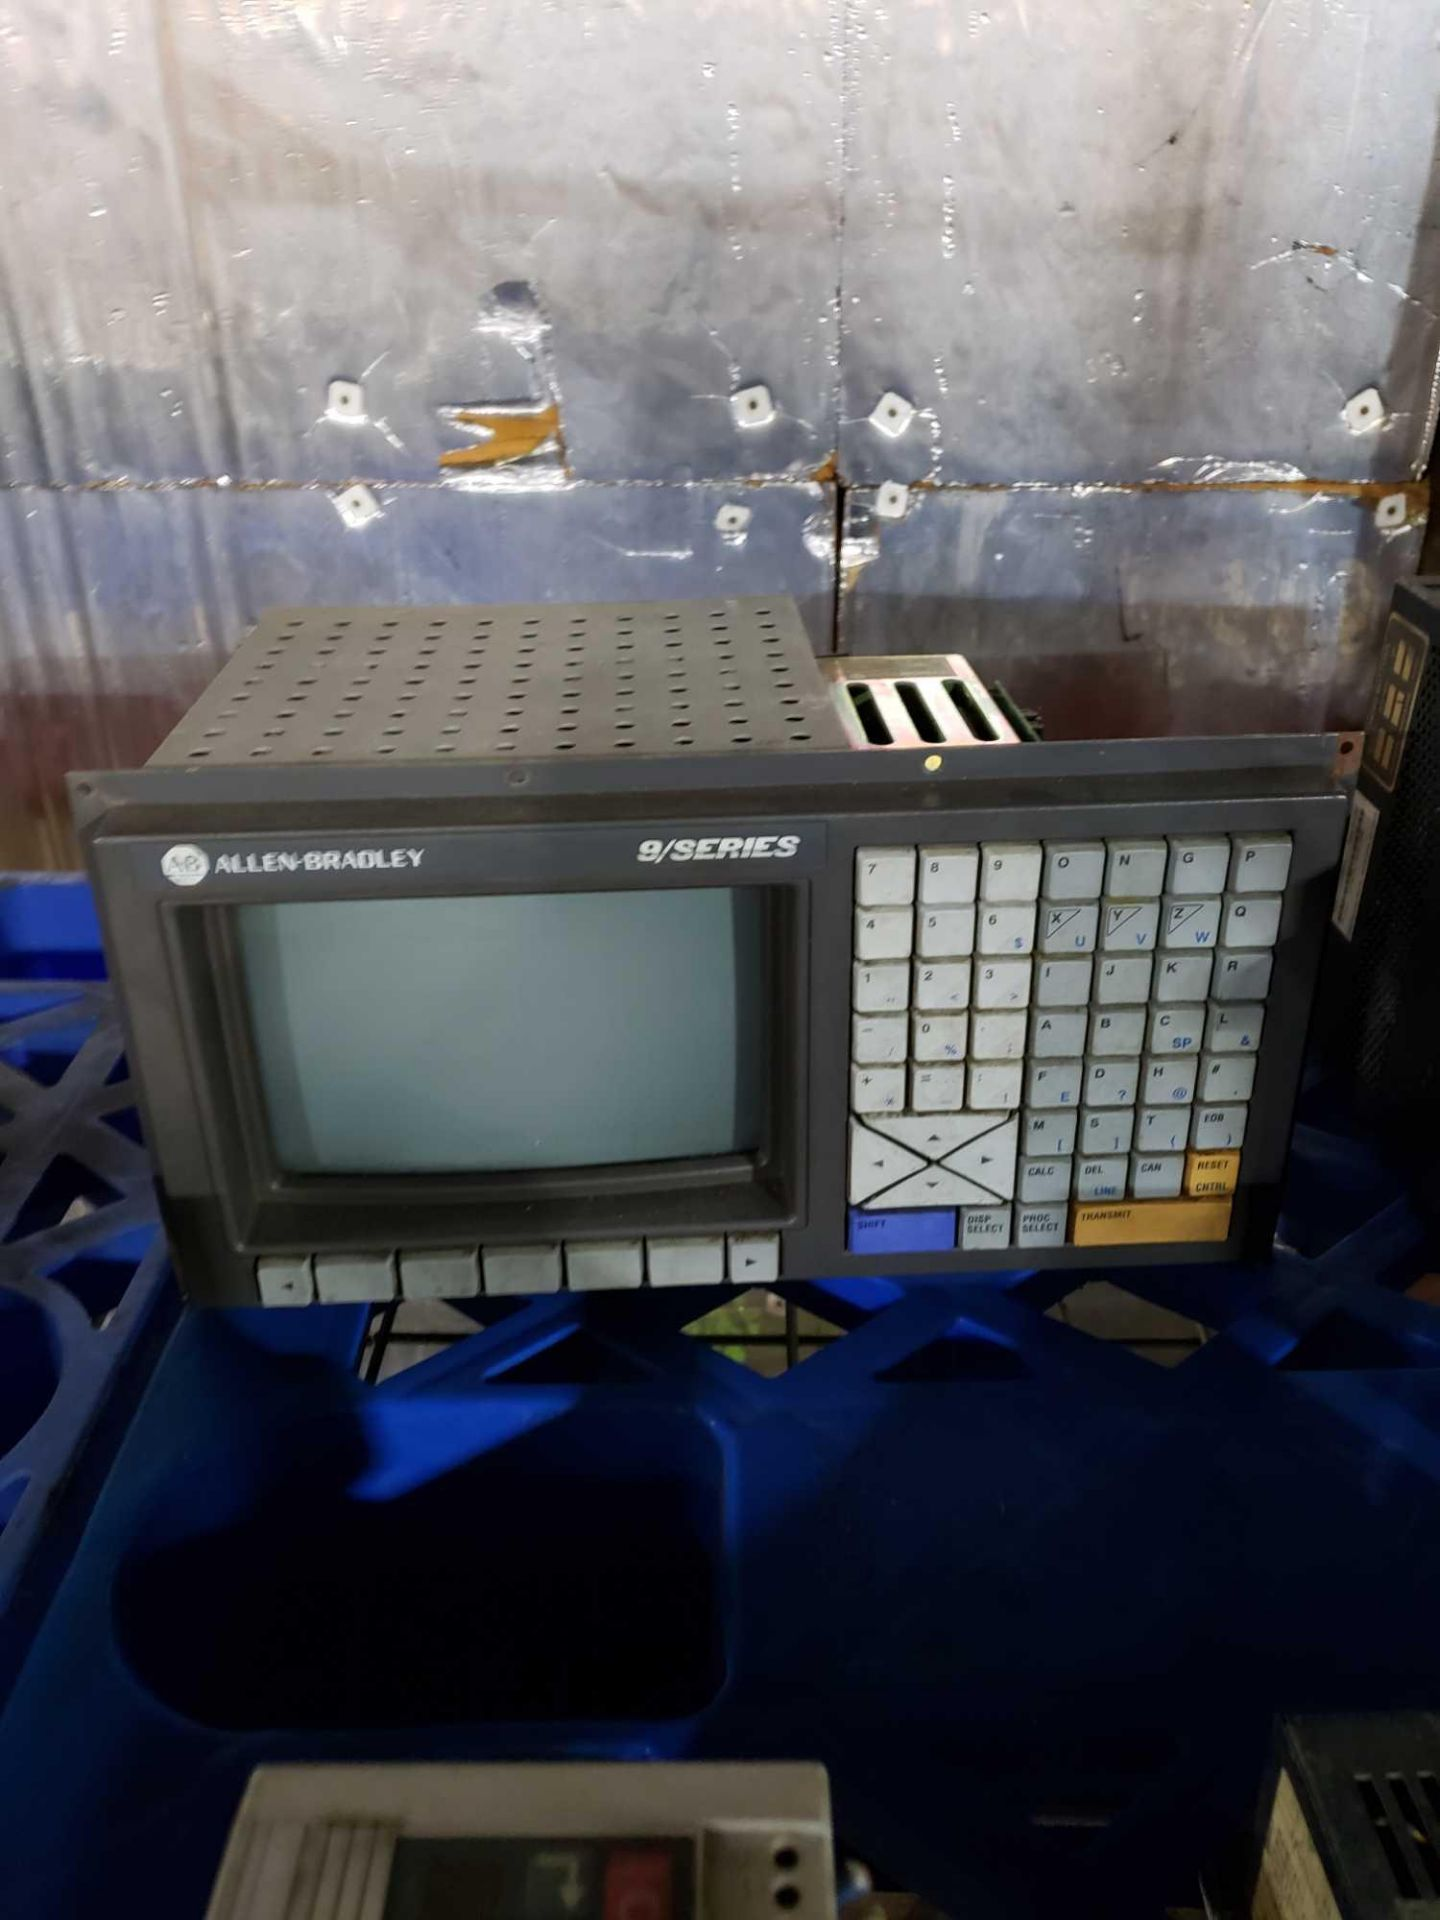 Lot 49 - Pallet of assorted electrical Allen Bradley 9/series controller, Parker and more.